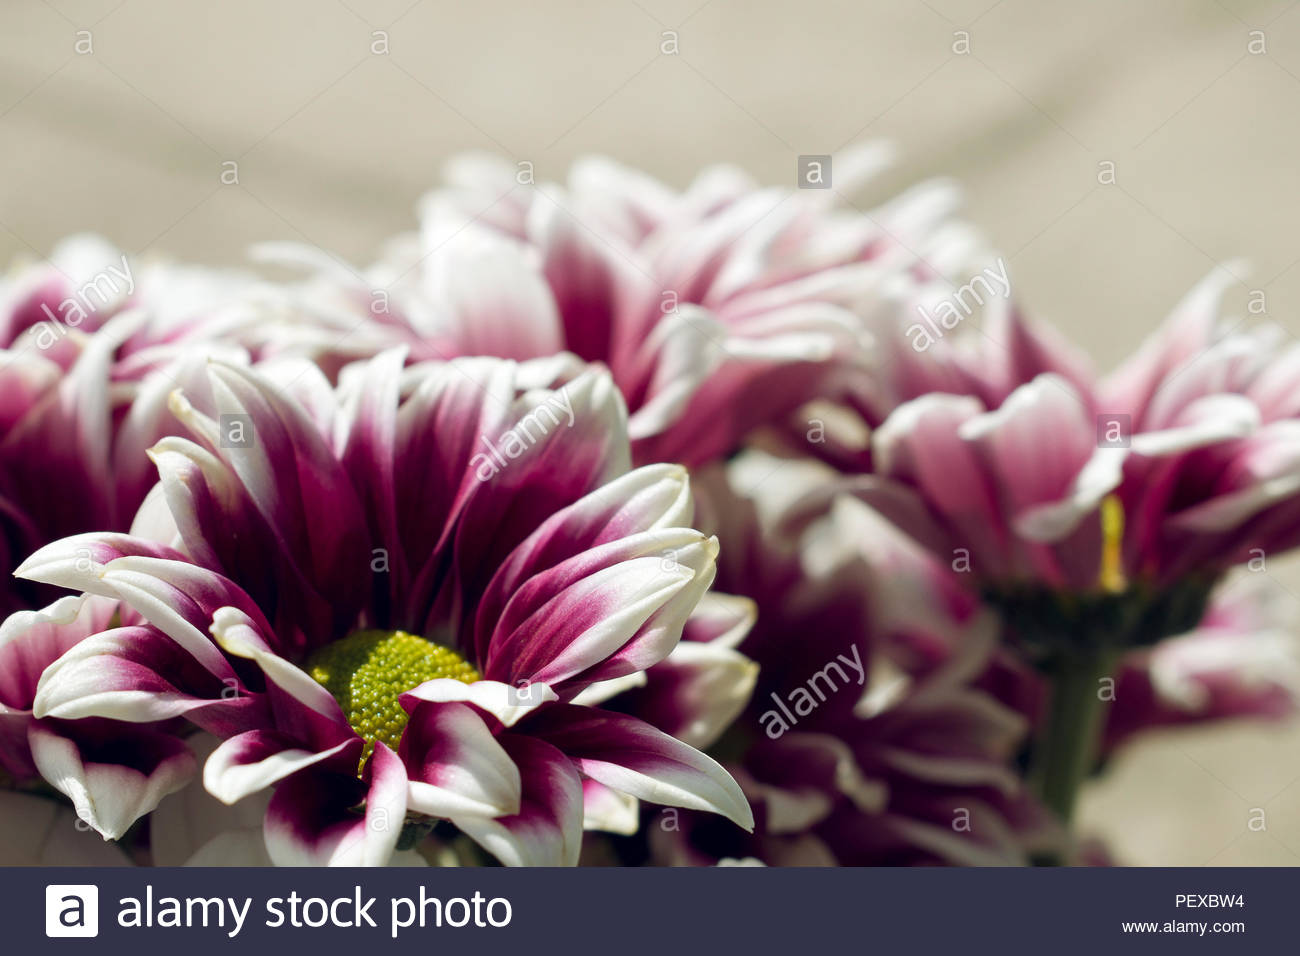 Pink Flowers White Edges Stock Photos Pink Flowers White Edges